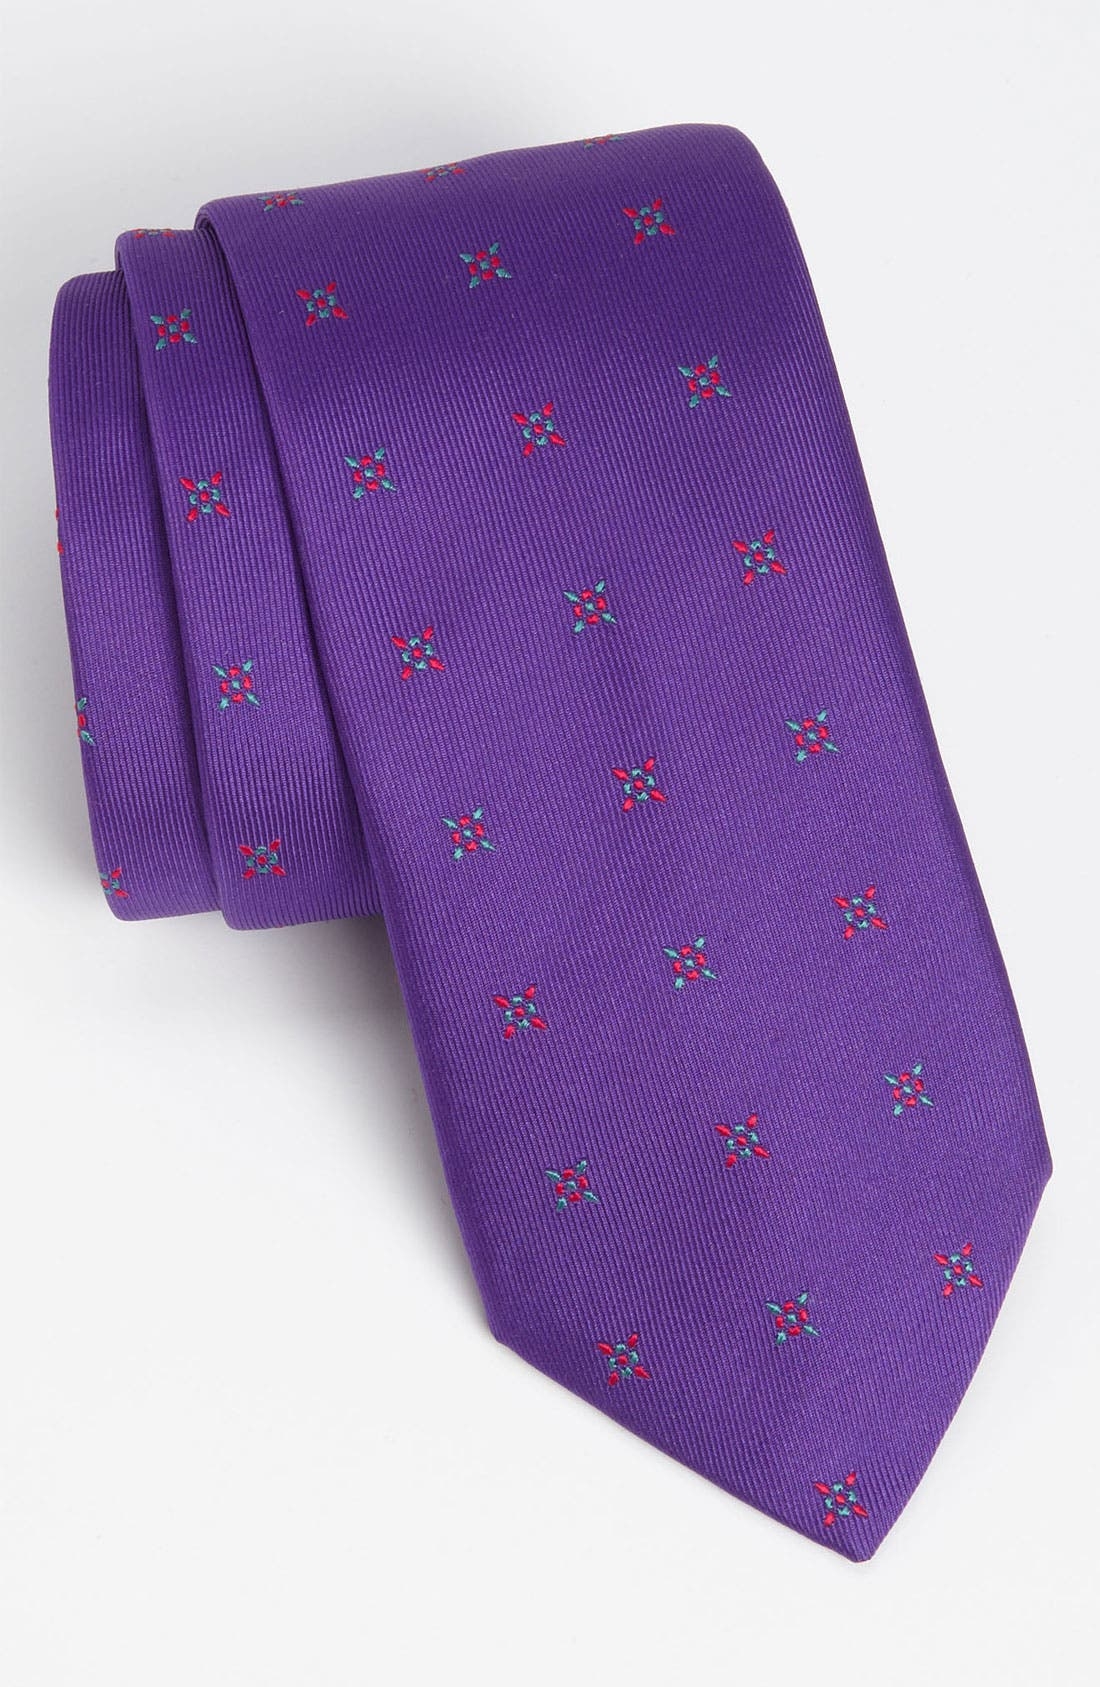 Alternate Image 1 Selected - Thomas Pink 'Castle Flower' Woven Silk Tie